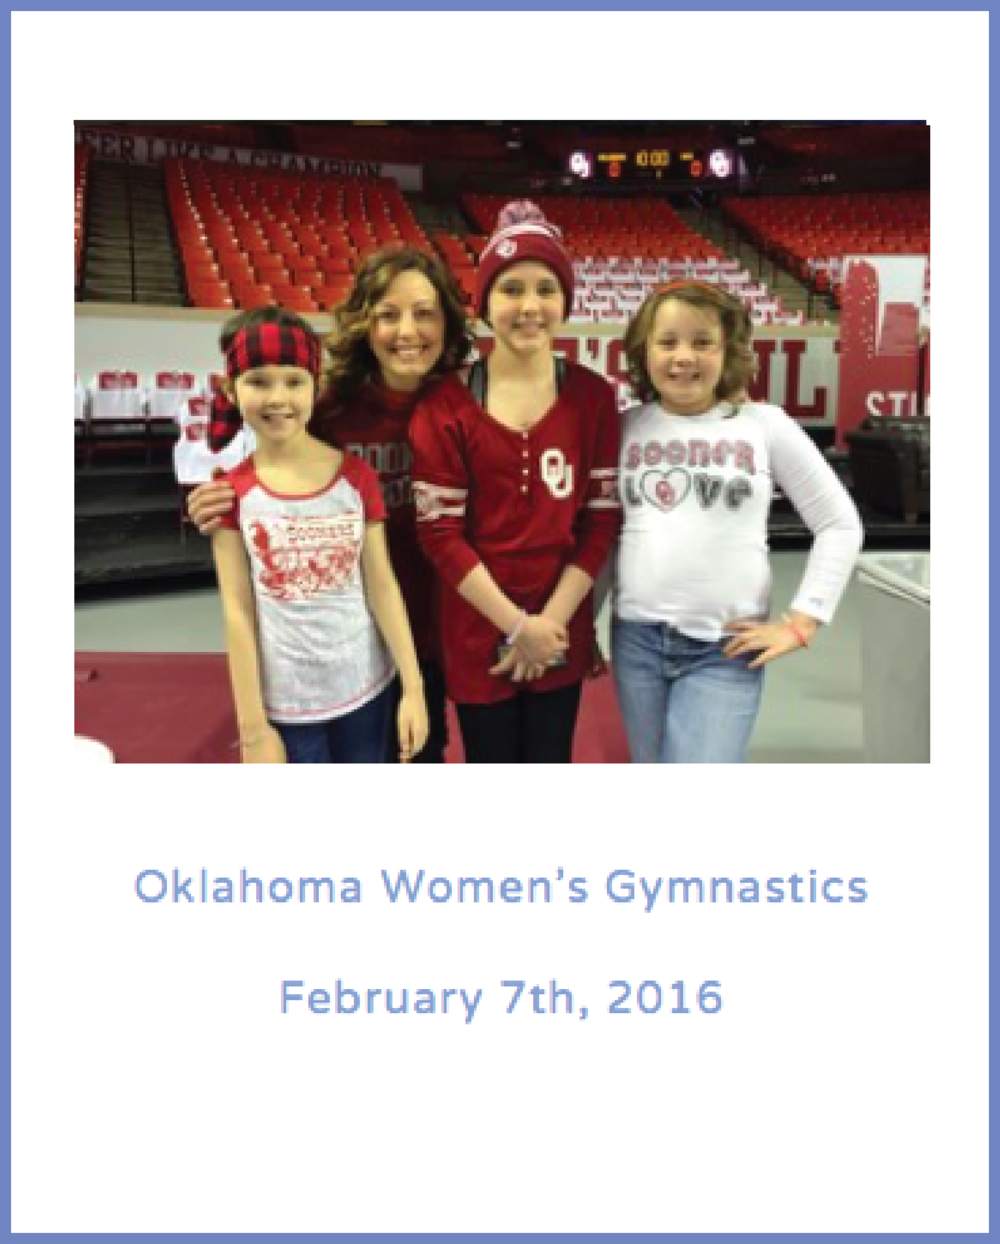 Oklahoma Women's Gymnastics                           February 7th, 2016